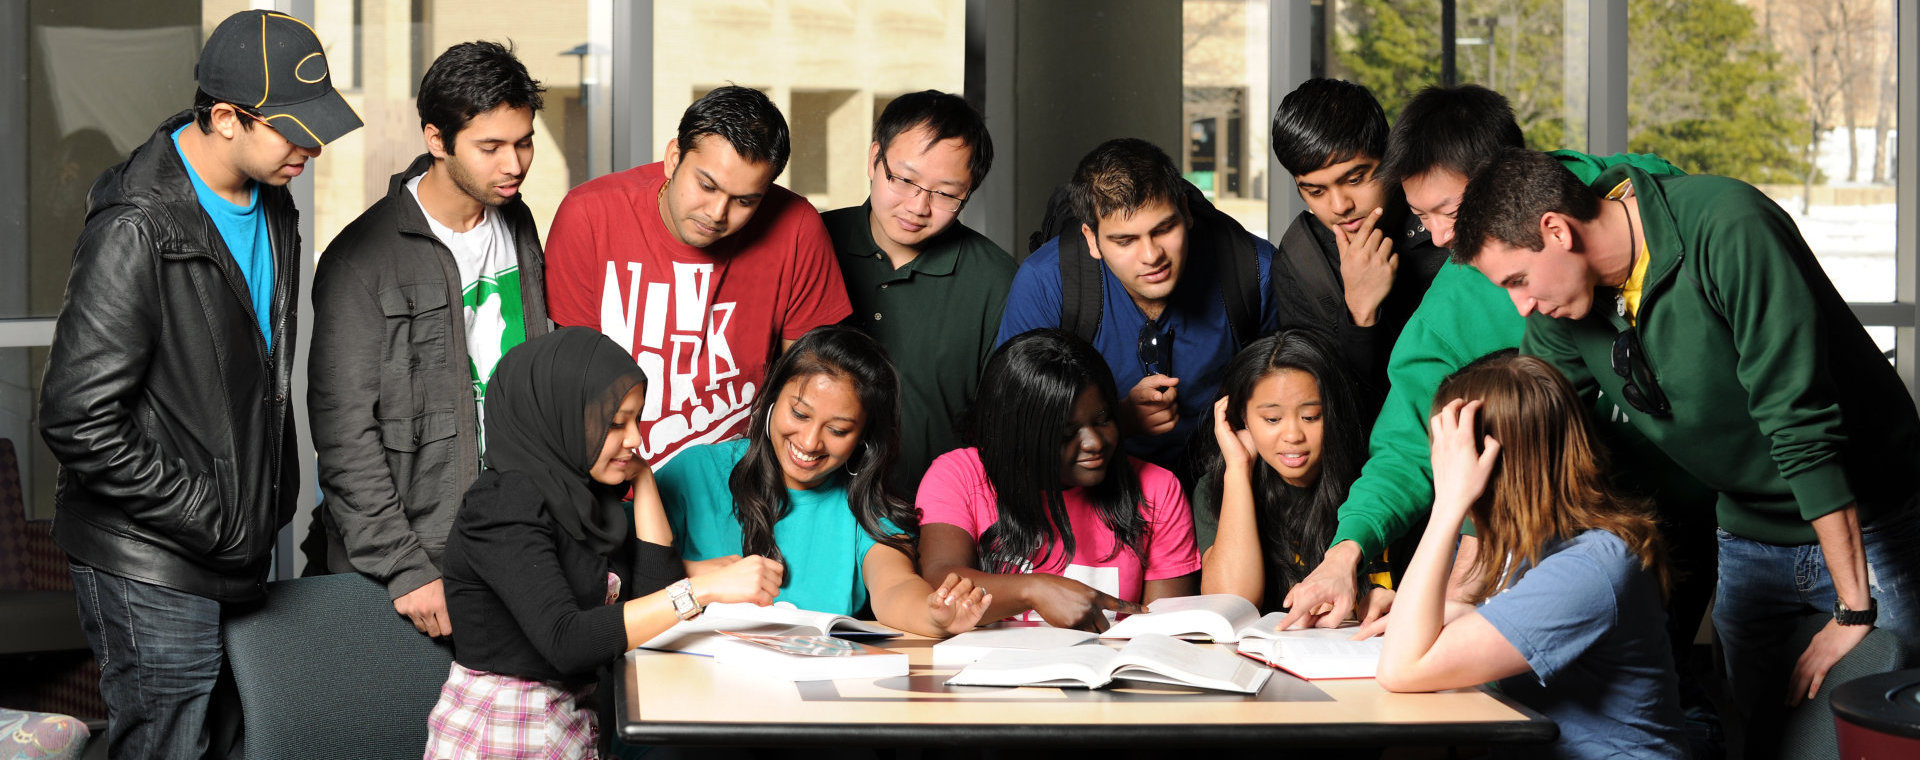 Group of students studying together